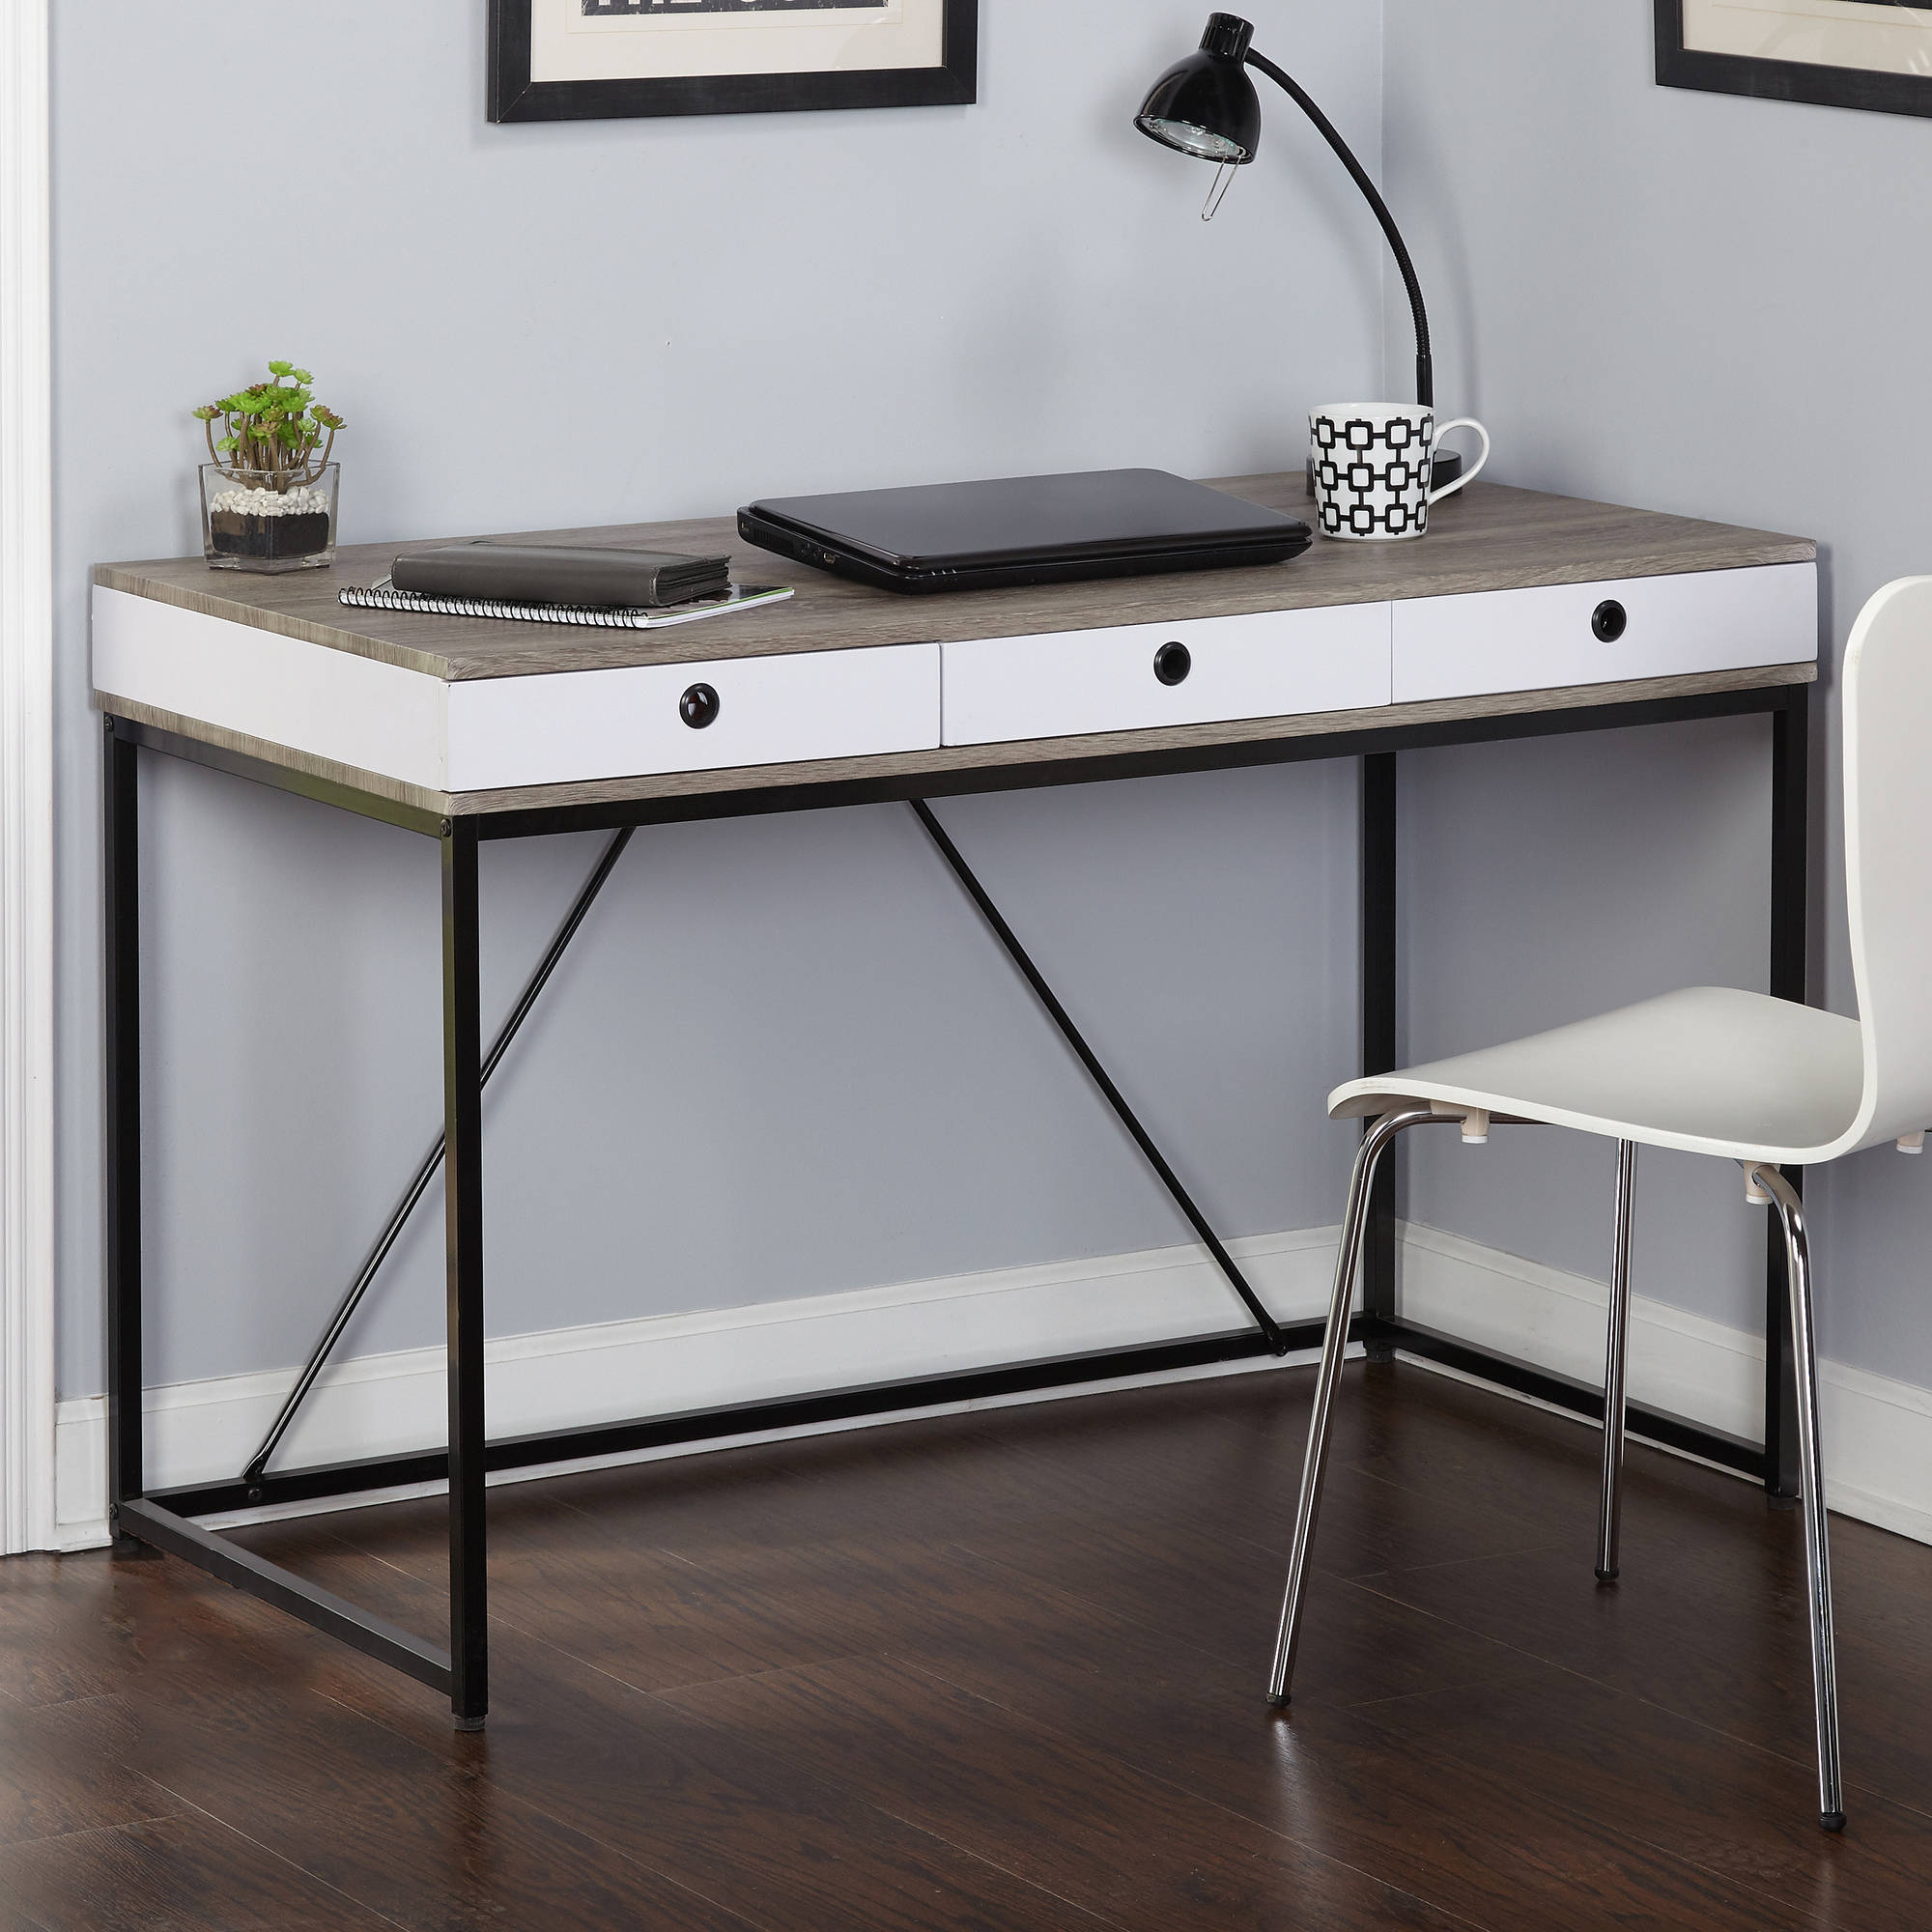 Chelsea Desk with 3 Drawers, Black/Gray/White